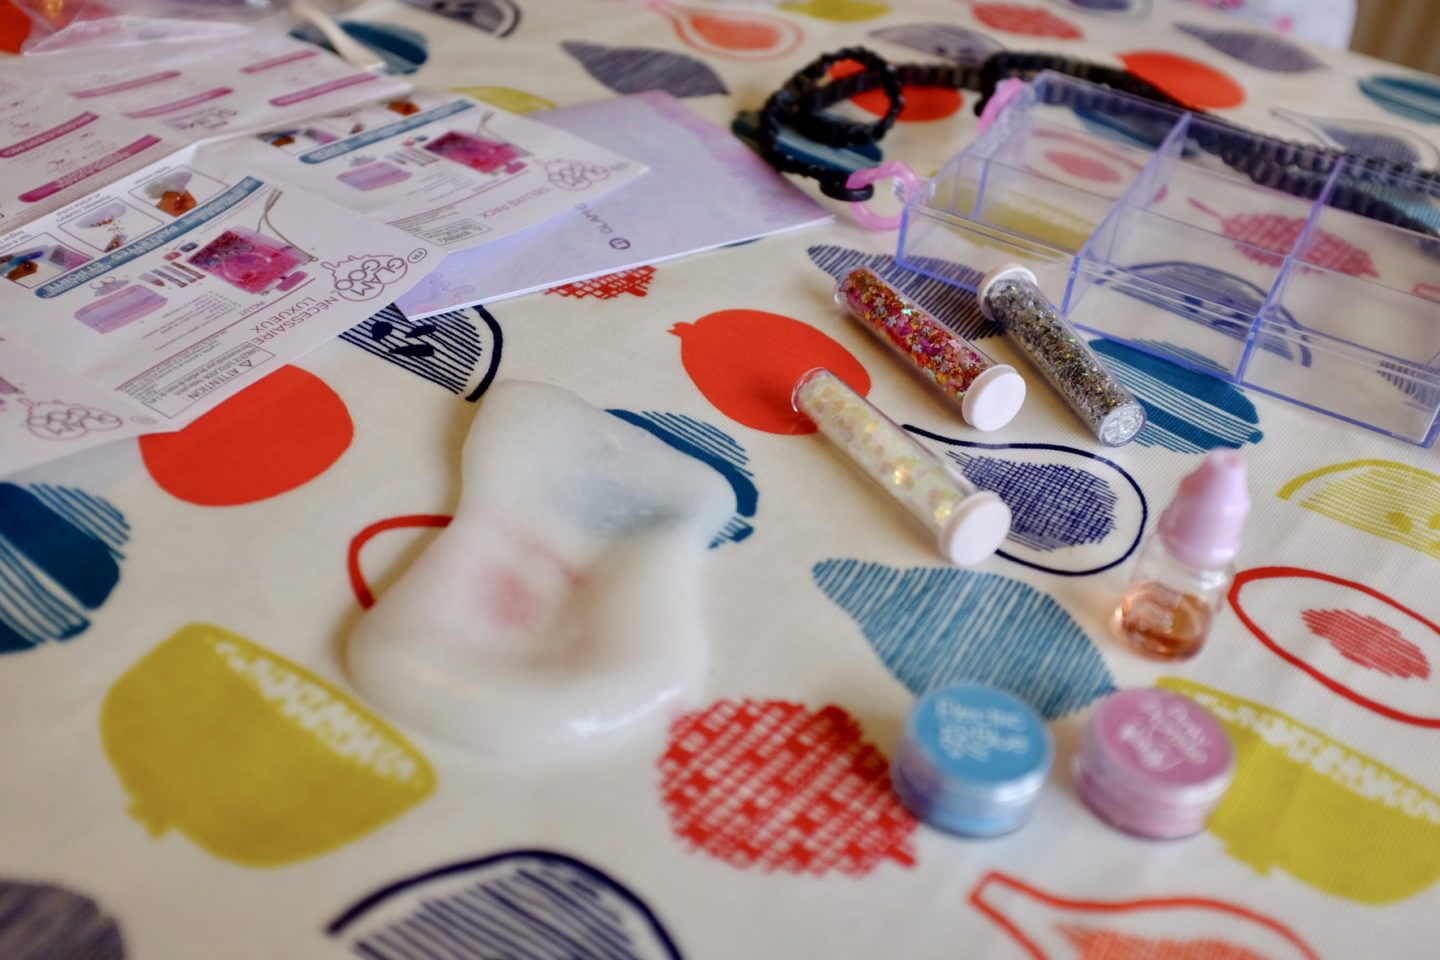 contents of Glam goo deluxe slime kit